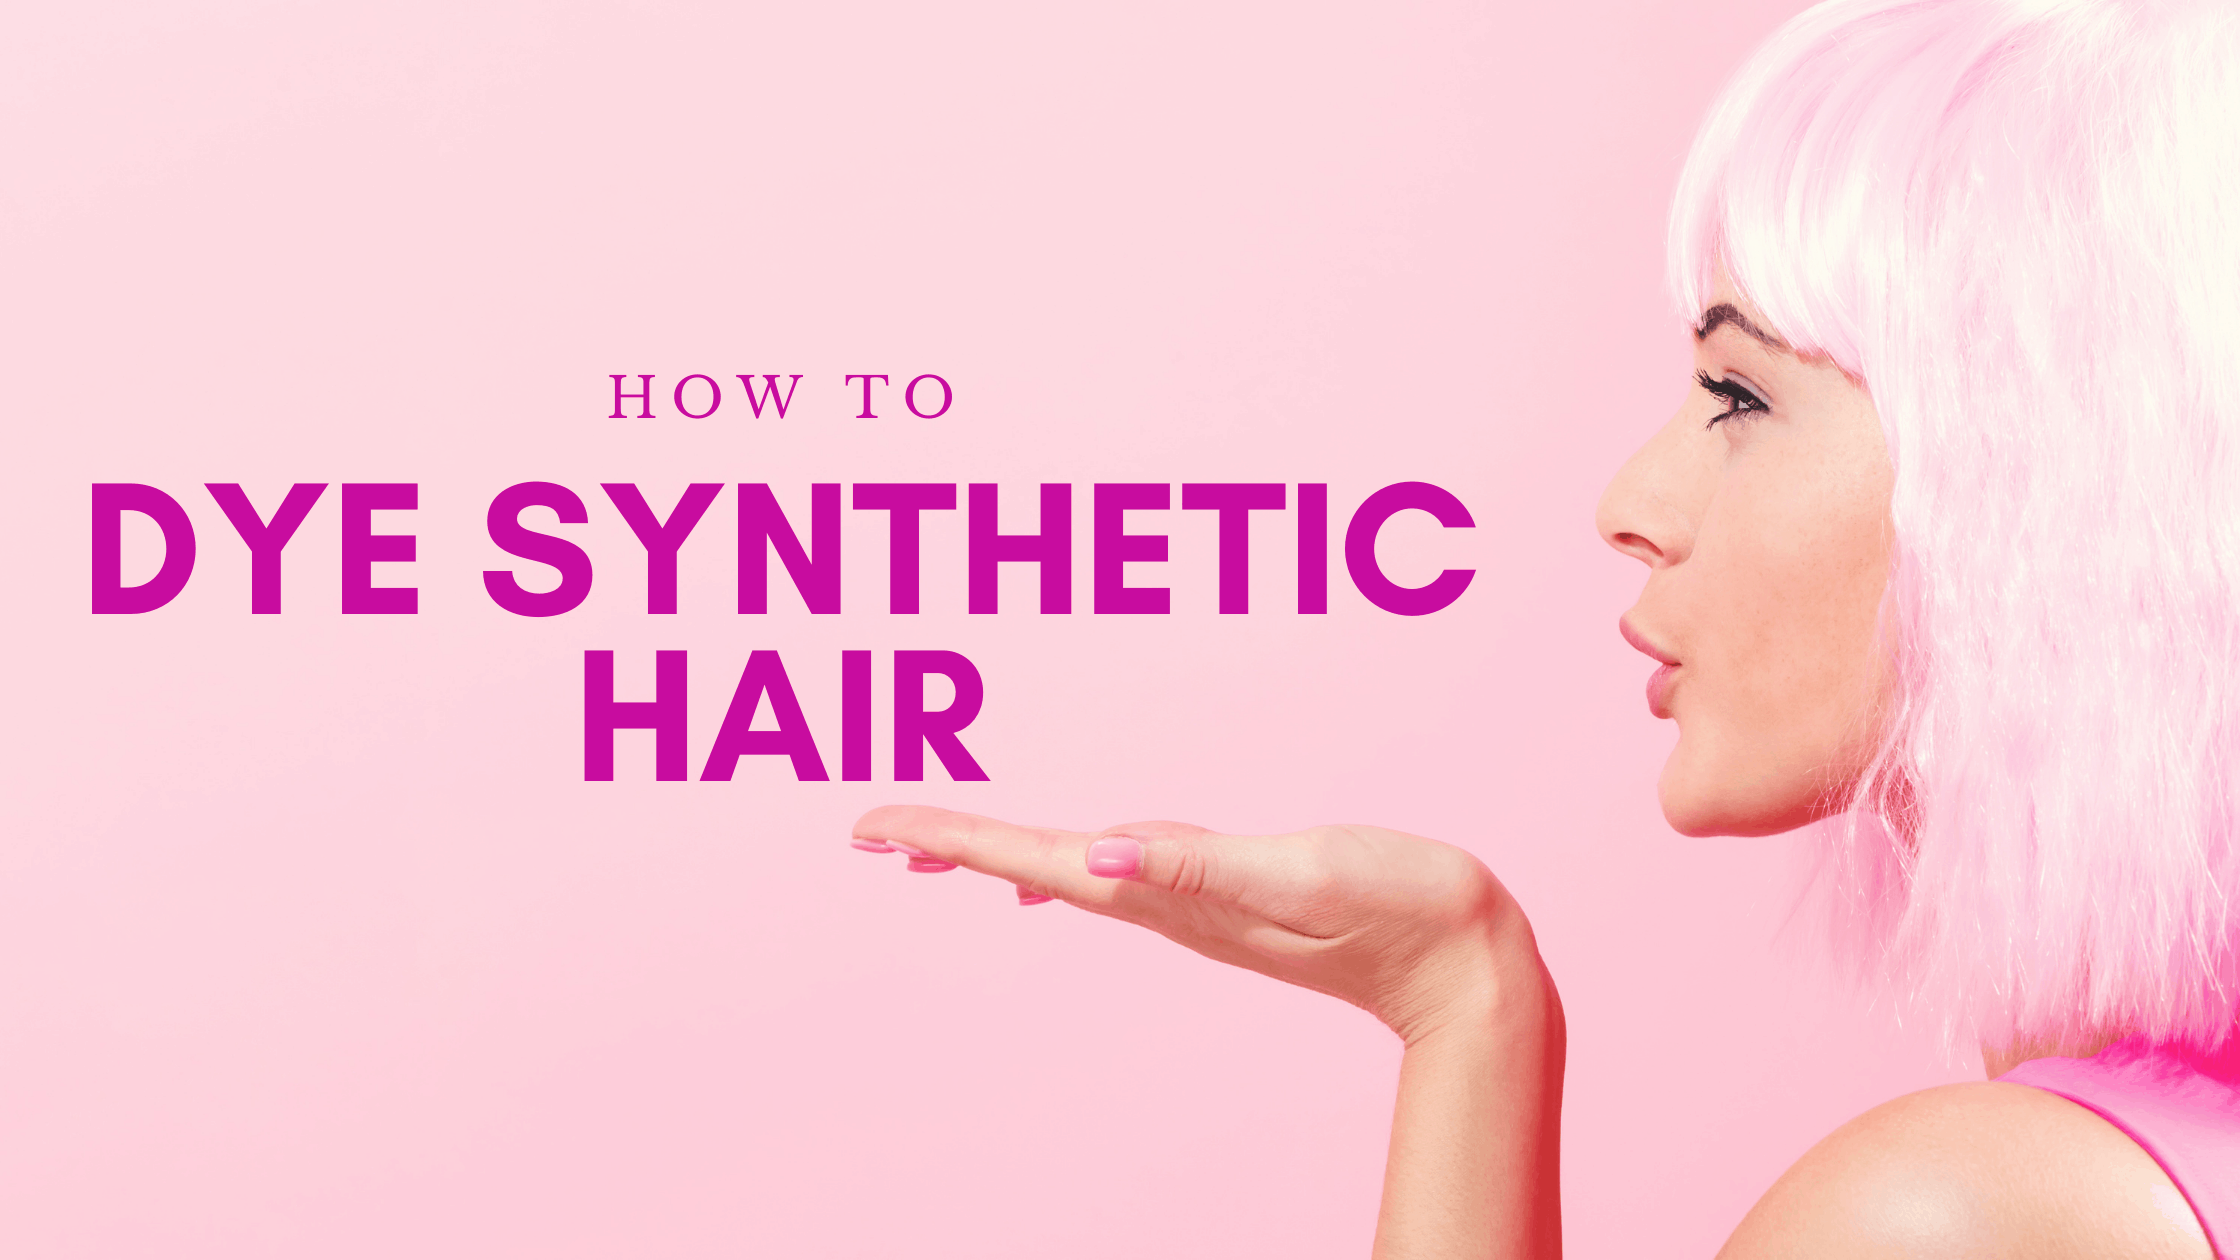 dye synthectic hair